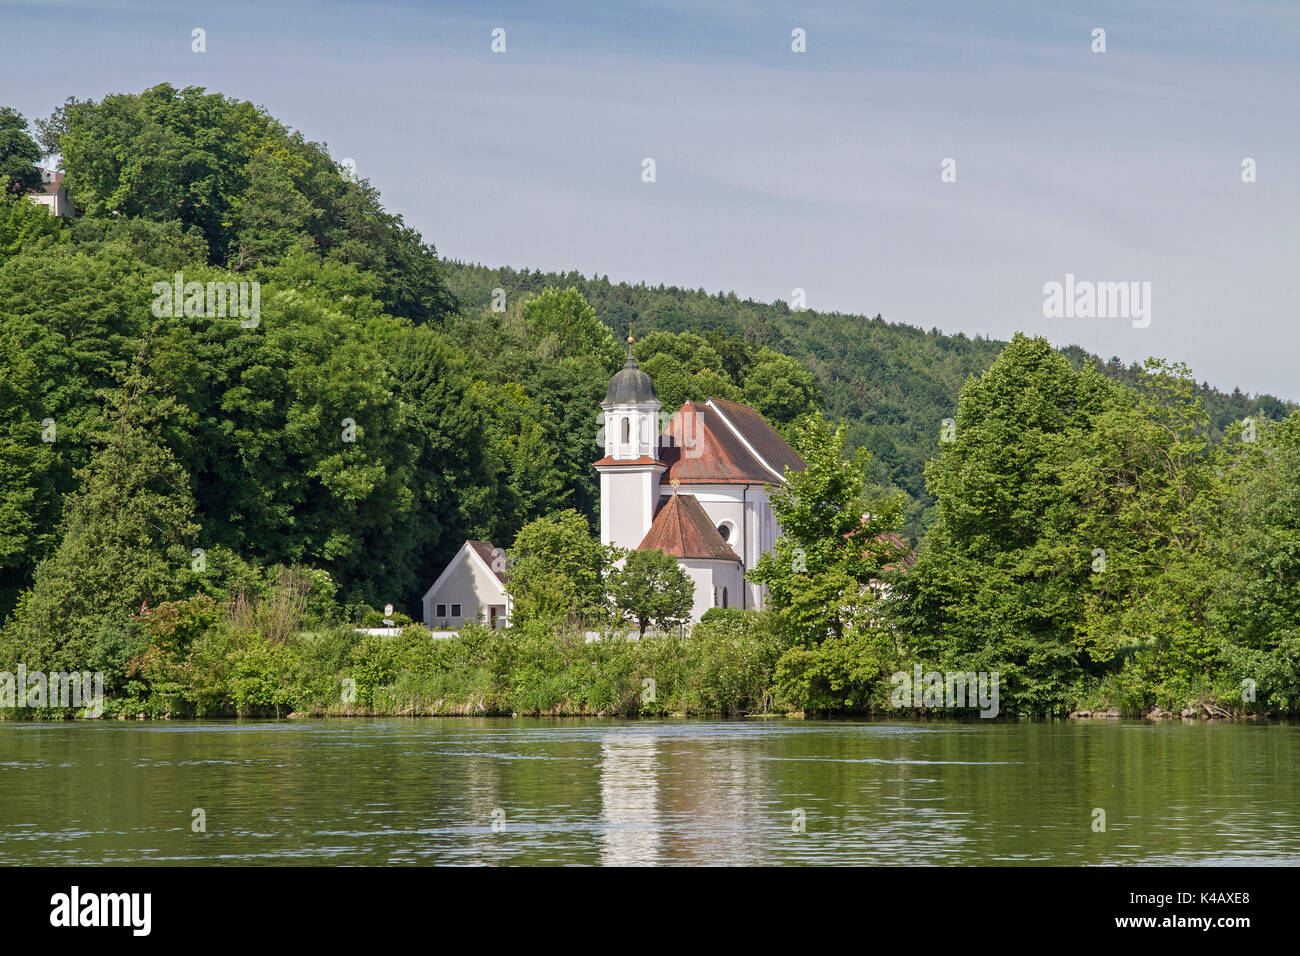 The Pilgrimage Church Of Mariaort Is Idyllically Located Directly Beside The Mouth Of The River Naab In The Danube - Stock Image